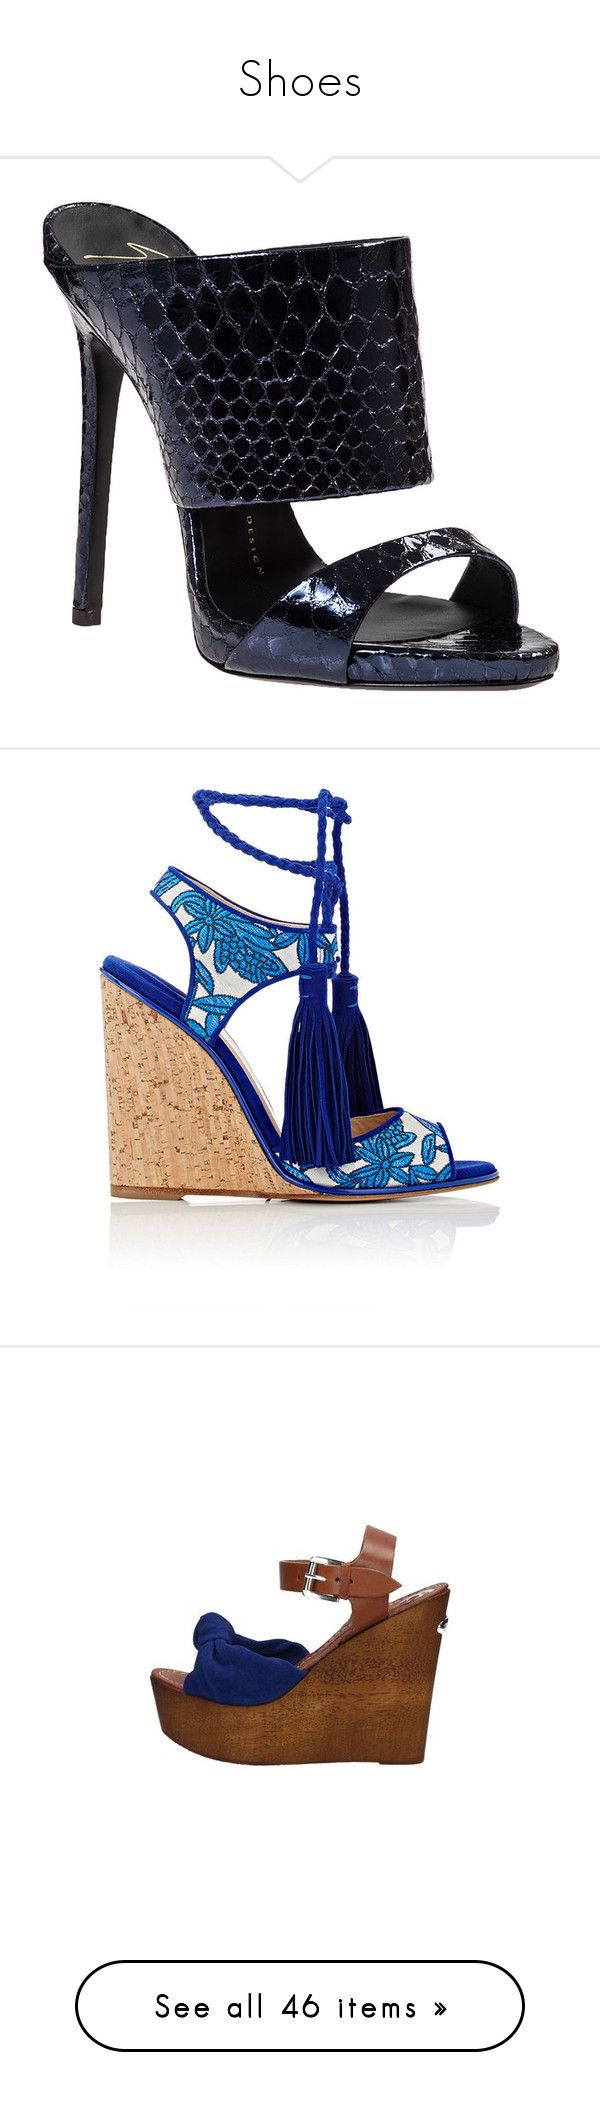 """Shoes"" by erica-tais ❤ liked on Polyvore featuring shoes, sandals, heels, high heels, navy snake, leather sandals, navy high heel sandals, navy blue sandals, high heel platform sandals and metallic platform sandals"